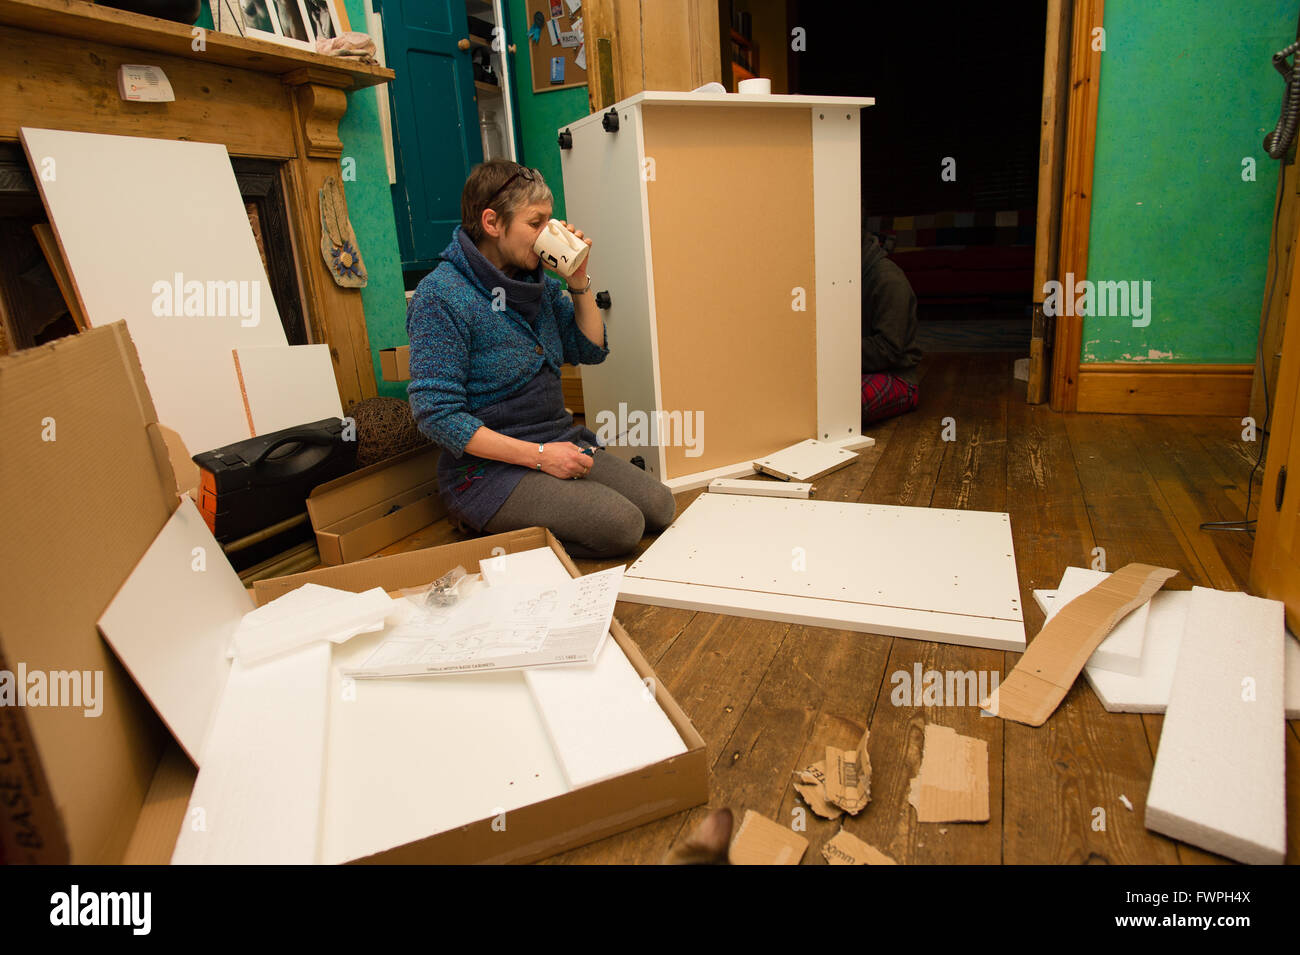 A middle-aged woman preparing to assemble a set of flat-pack ...